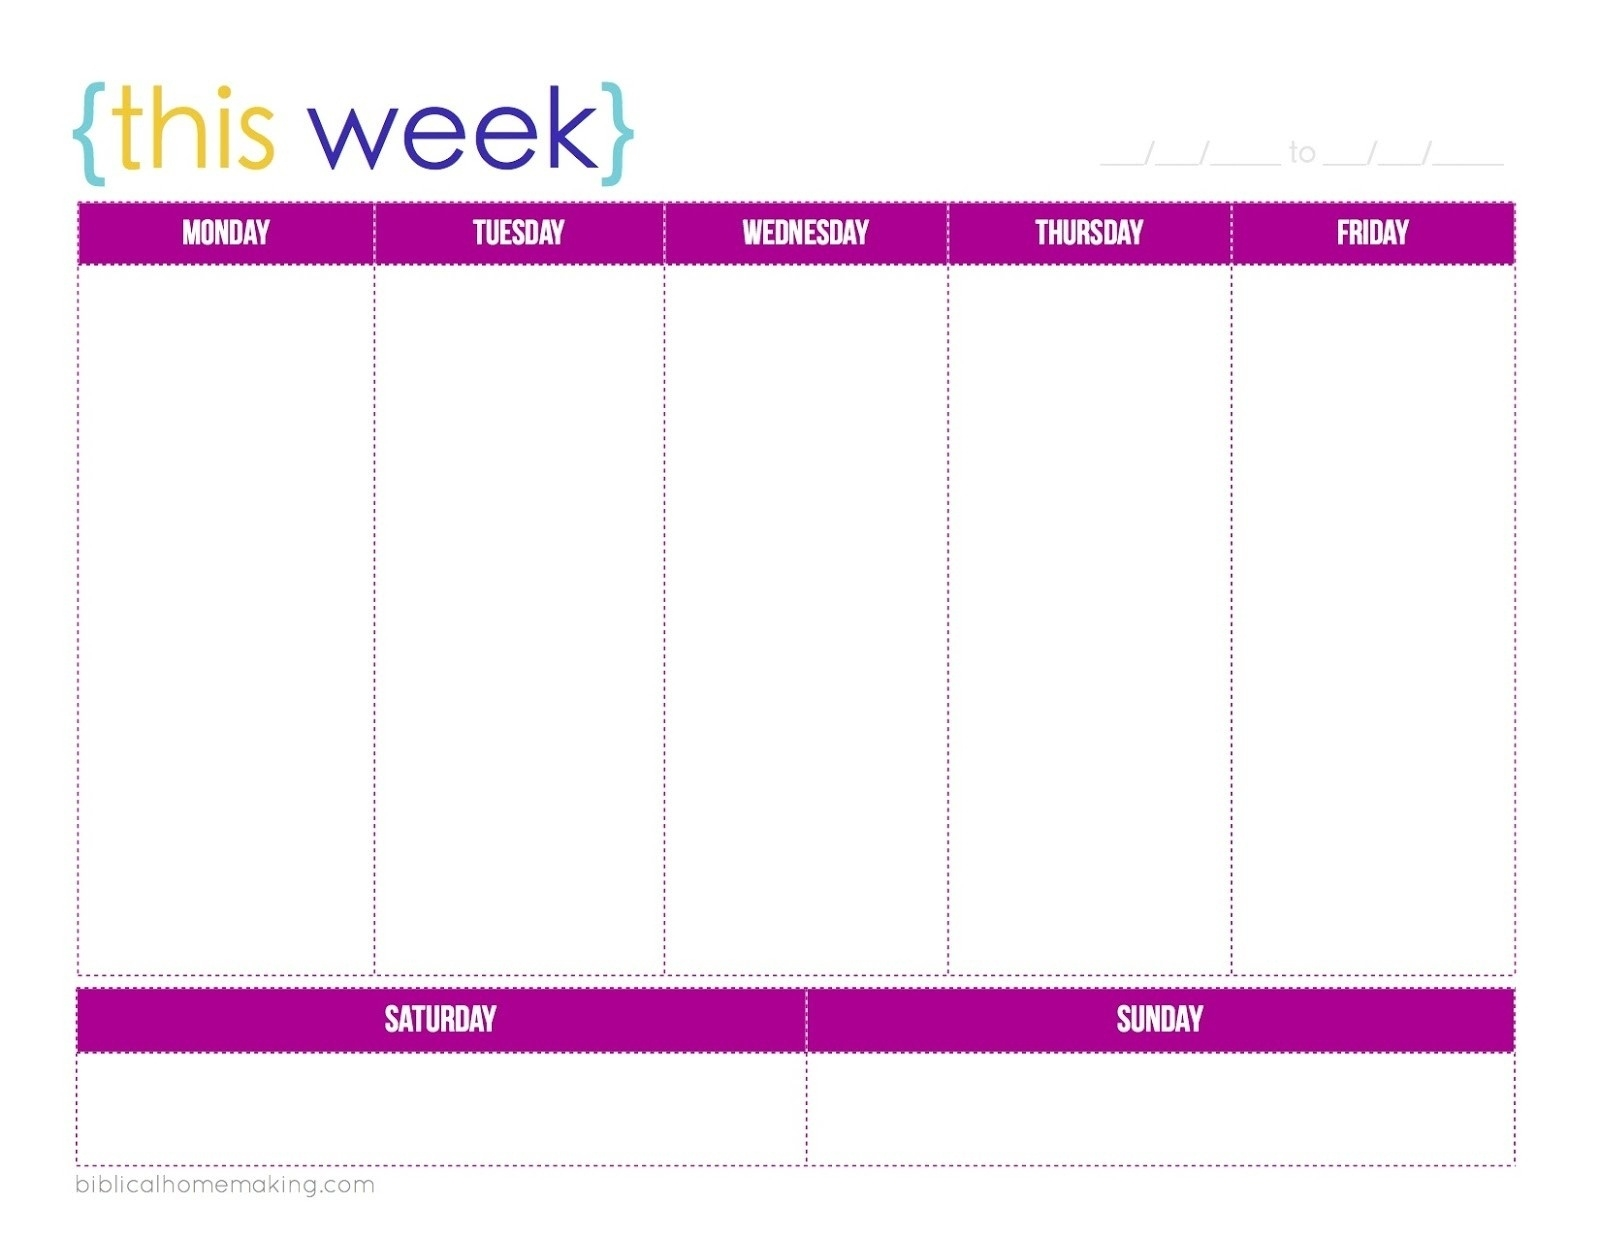 Schedule Template Printable One Week Calendar E2 80 93 Celo_1 Week Calendar Blank